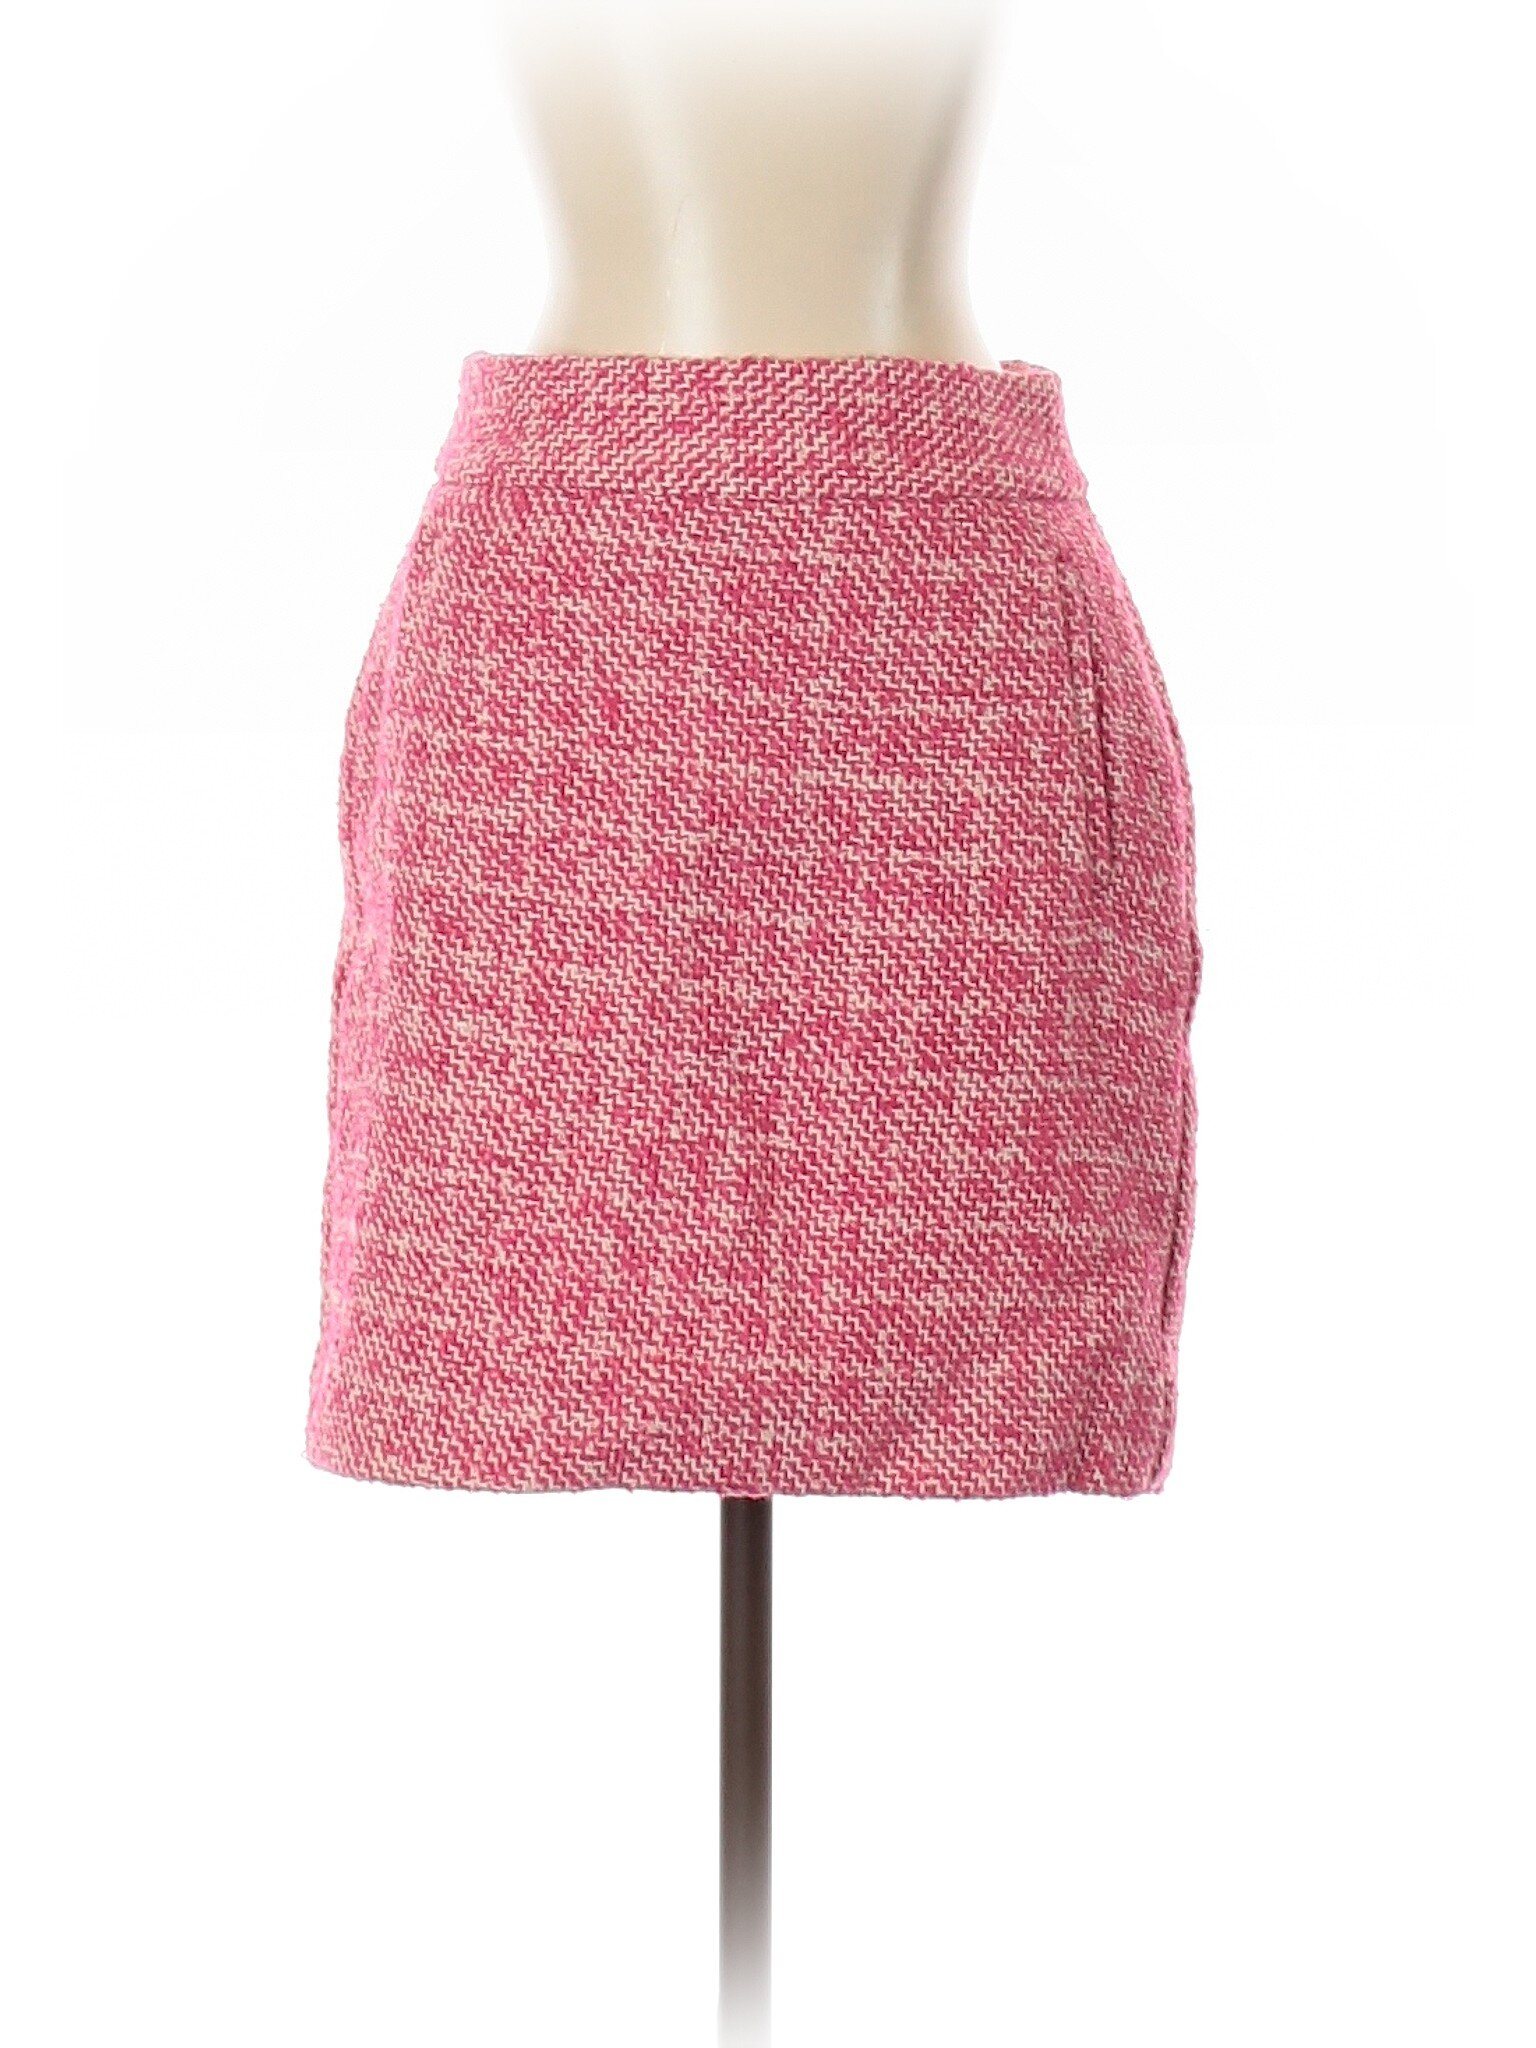 Banana Republic Pink Tweed Skirt , 26.99  Pair with a black turtleneck and knee-high boots.